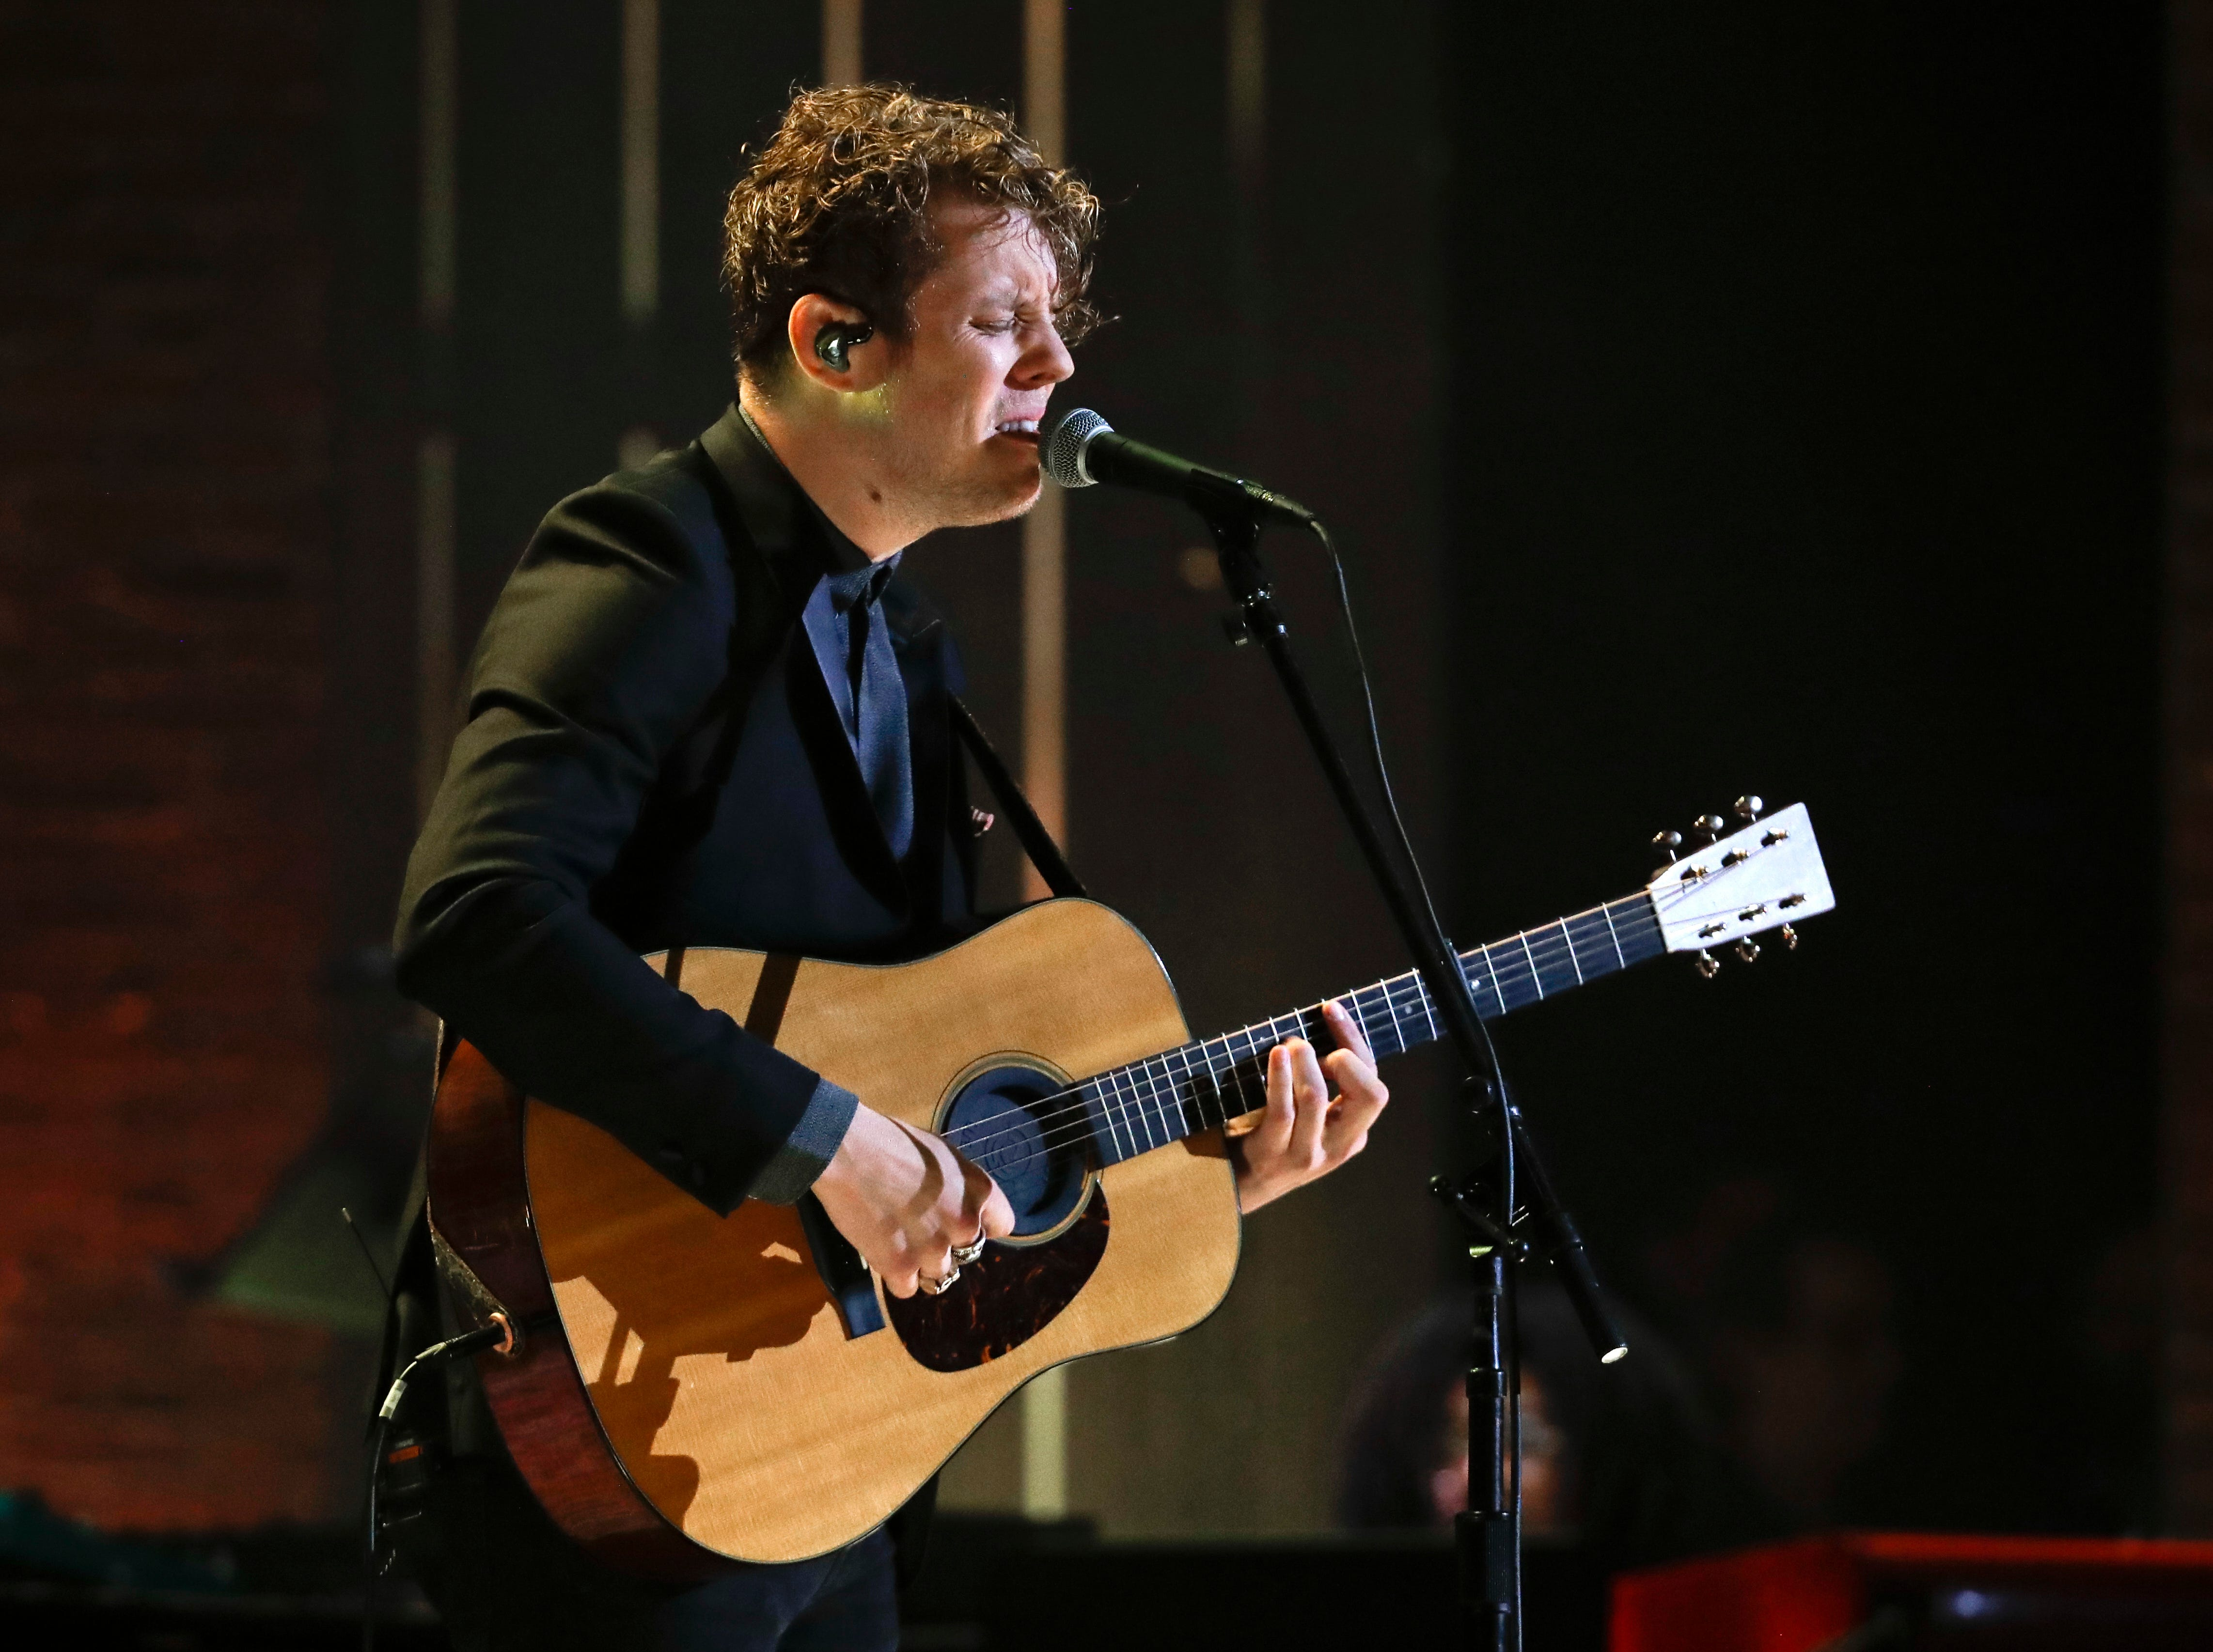 Anderson East performs during the Americana Honors and Awards show Wednesday, Sept. 12, 2018, in Nashville, Tenn. (AP Photo/Mark Zaleski)